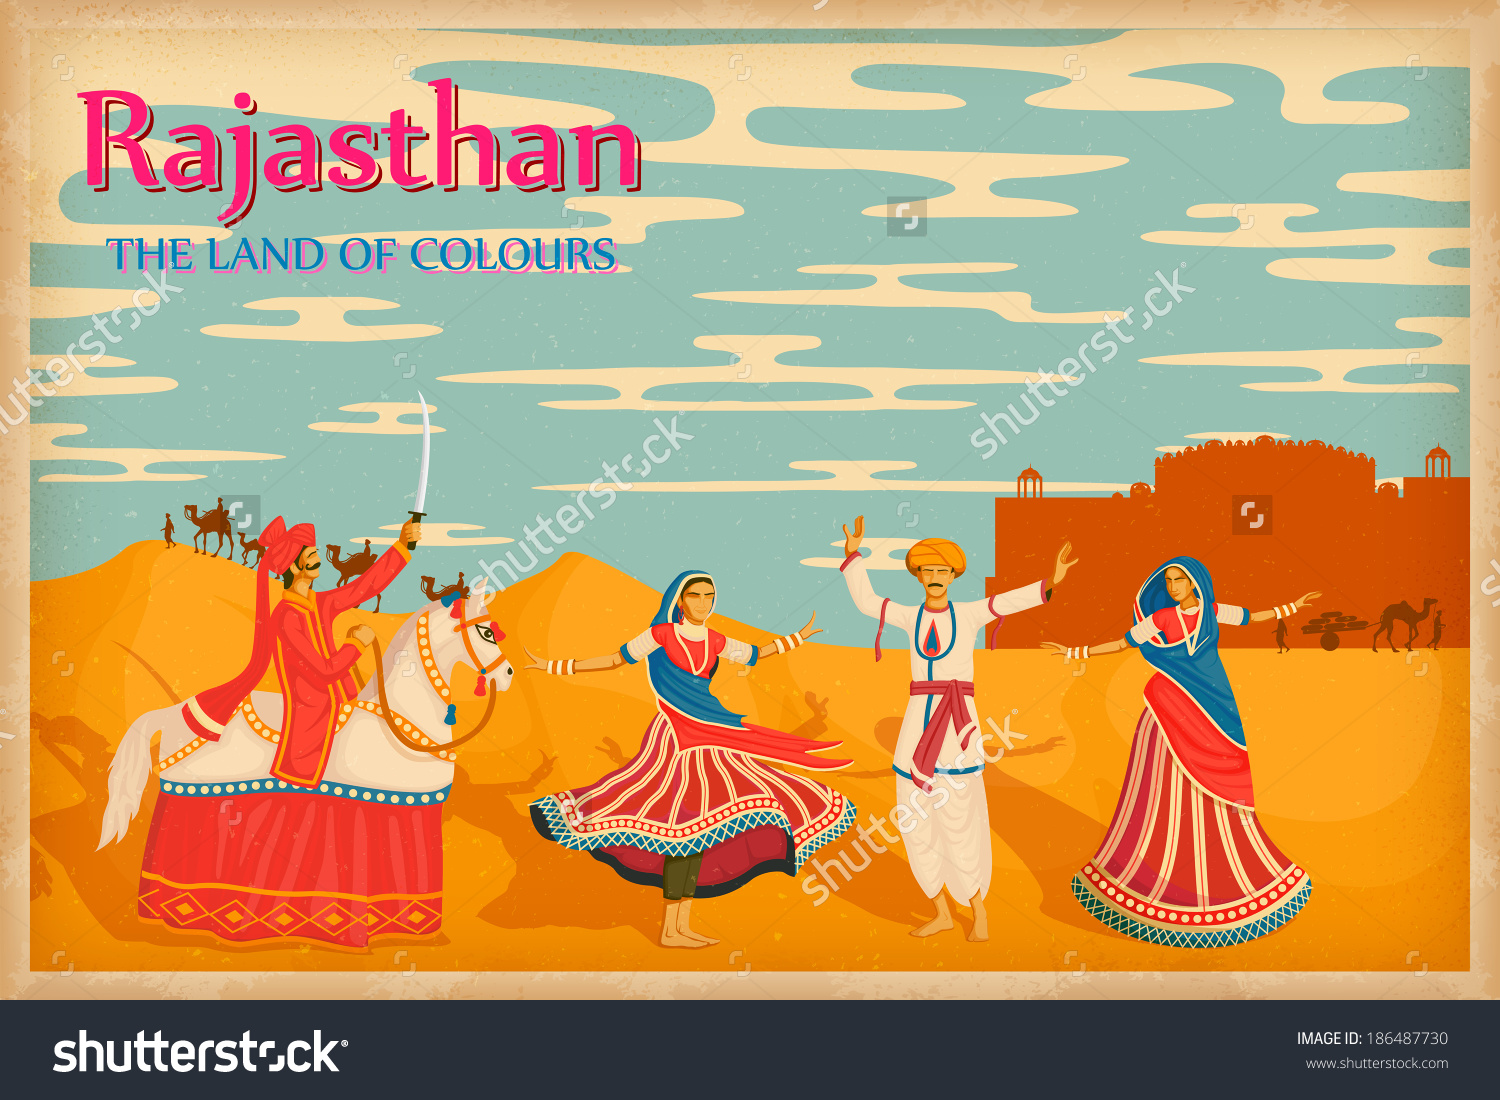 Hd clipart of rajasthan.